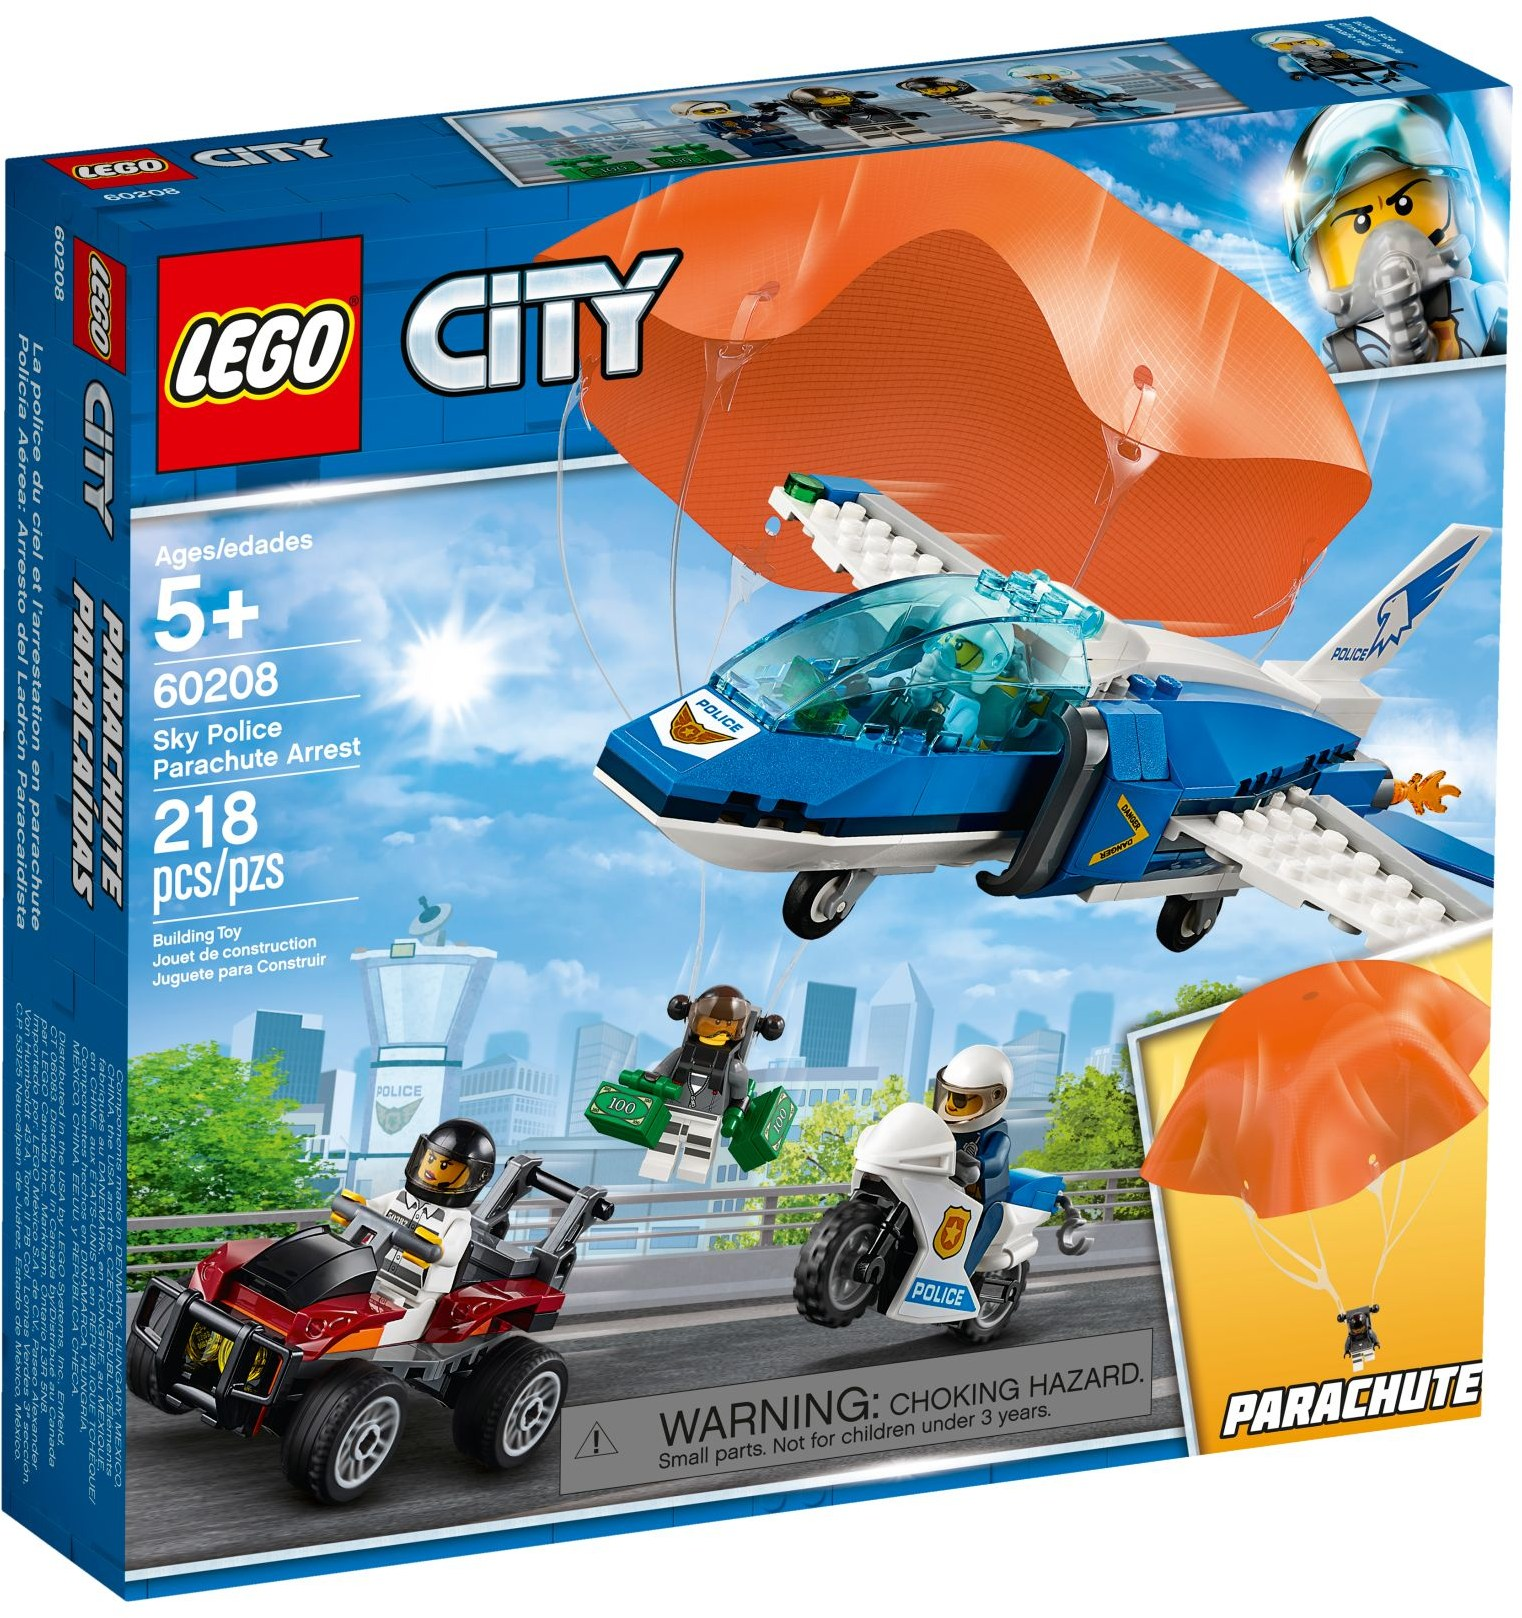 LEGO Town Sets: 60208 City Parachute Arrest NEW